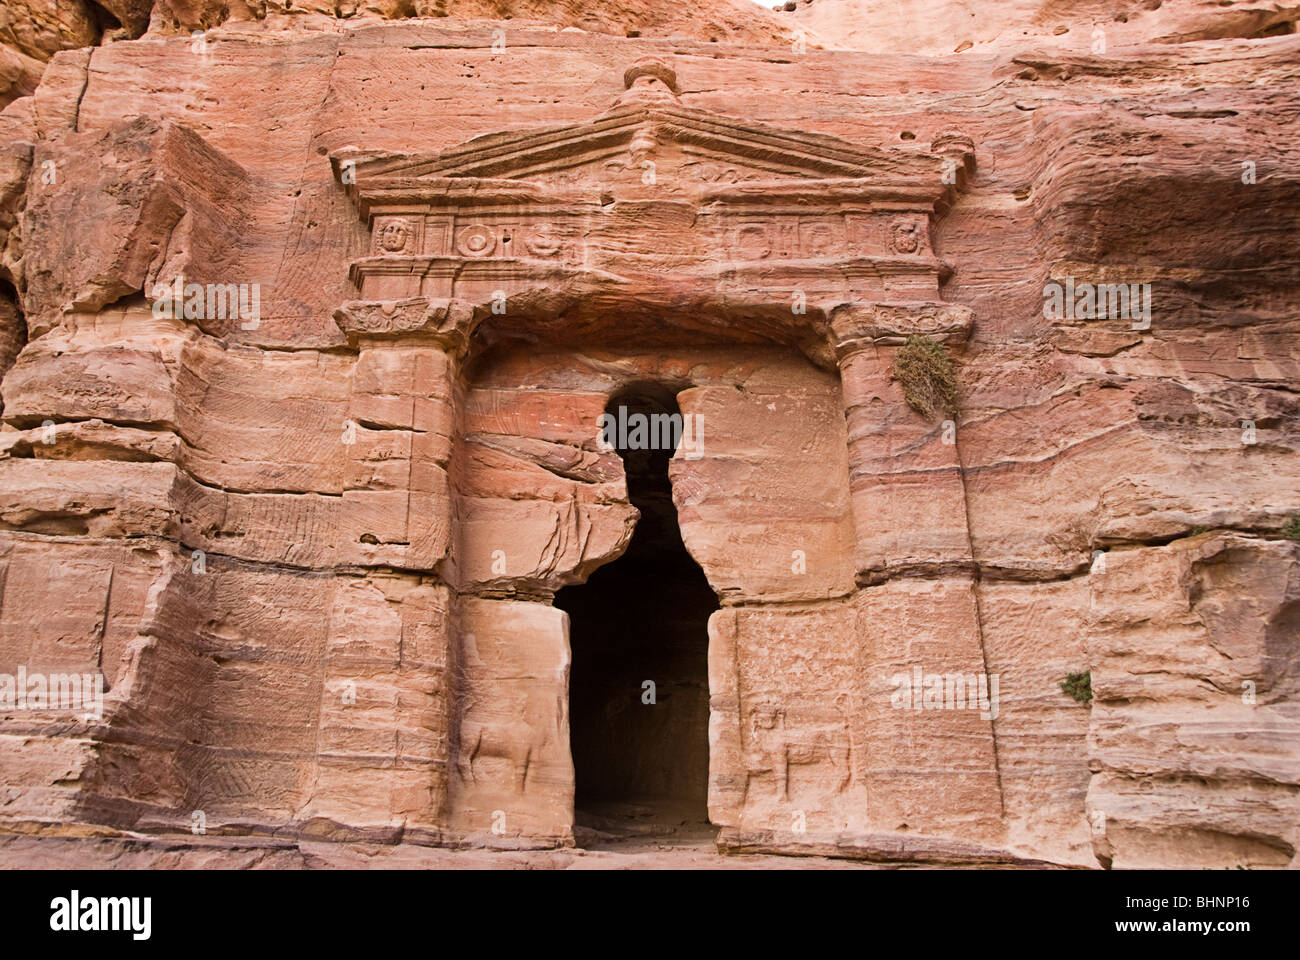 One of the many buildings carved on rock in petra